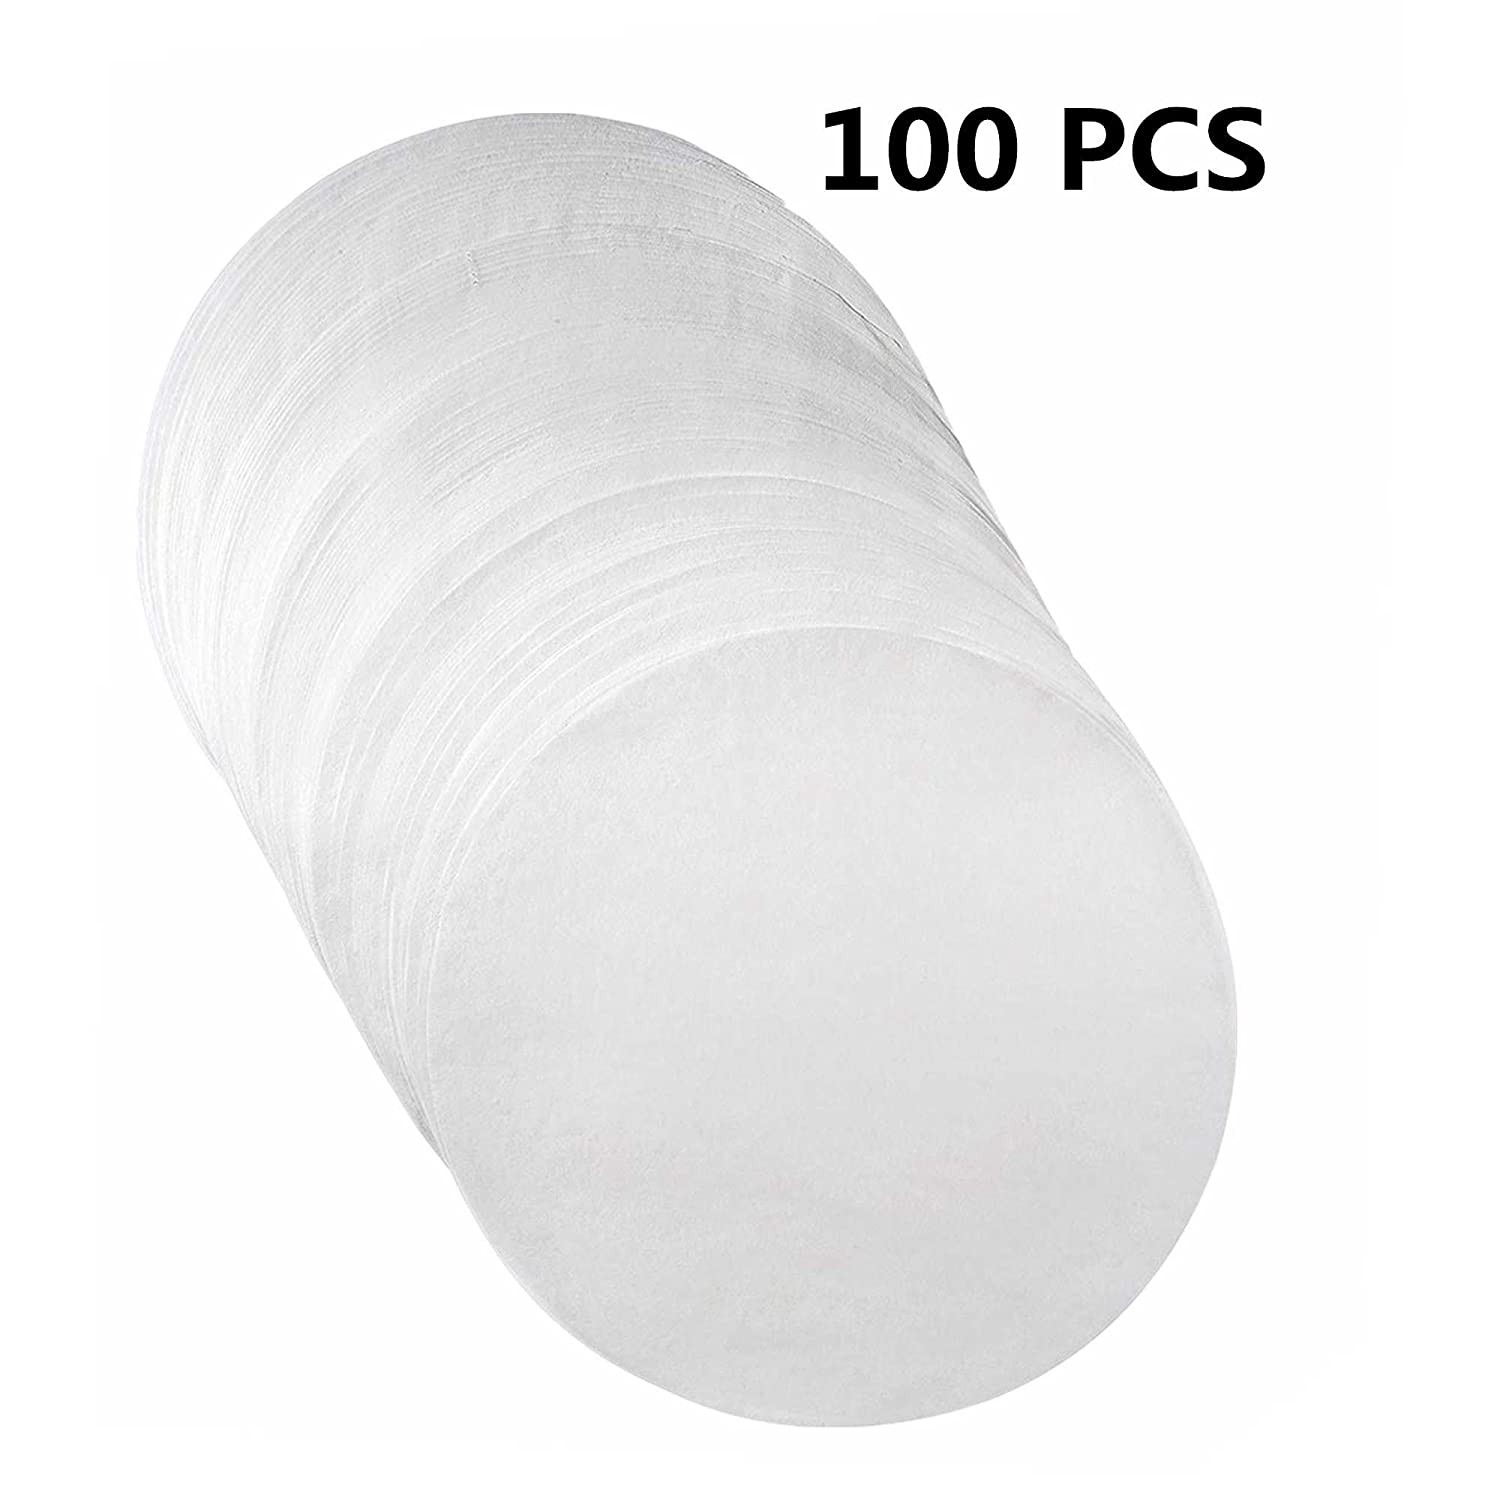 (Set of 100) Non-Stick Round Parchment Paper- 7 inch - 100 Eco-Friendly Pack - Baking Paper Liners for Round Cake Pans Circle Cheesecake, Cooking, Air Fryer 71oubSxBGpL